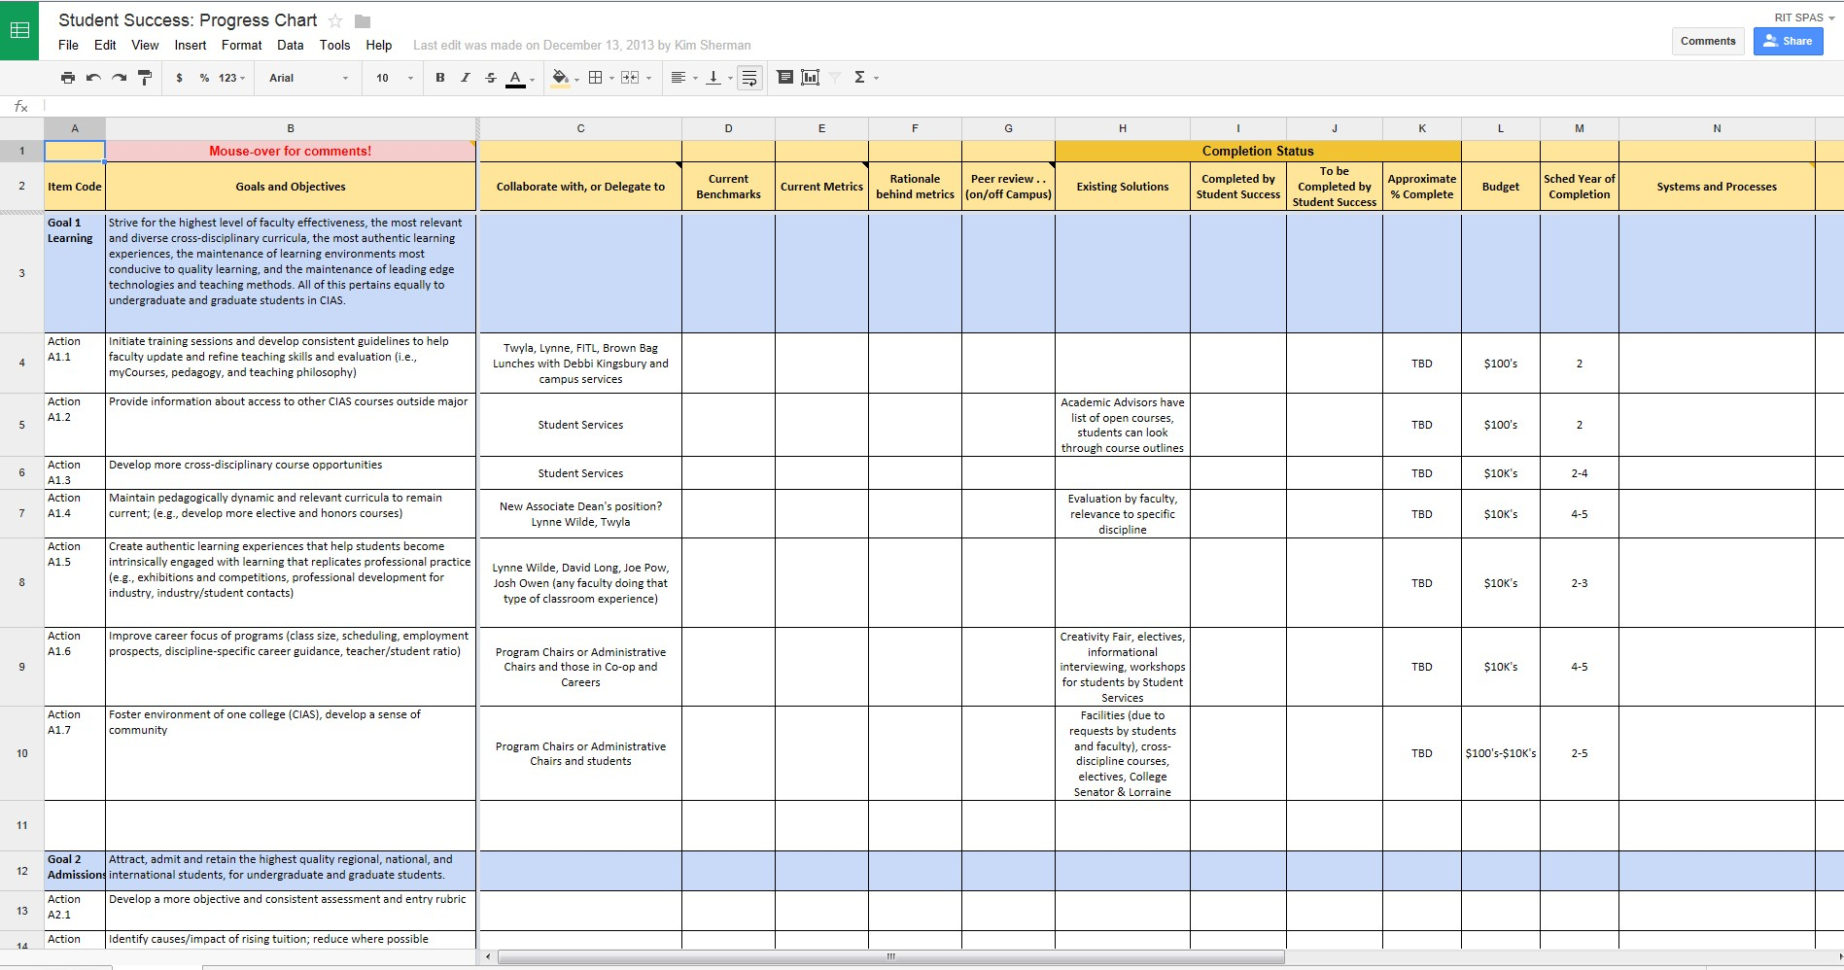 Scholarship Spreadsheet Inside Student Success Progress And Plan